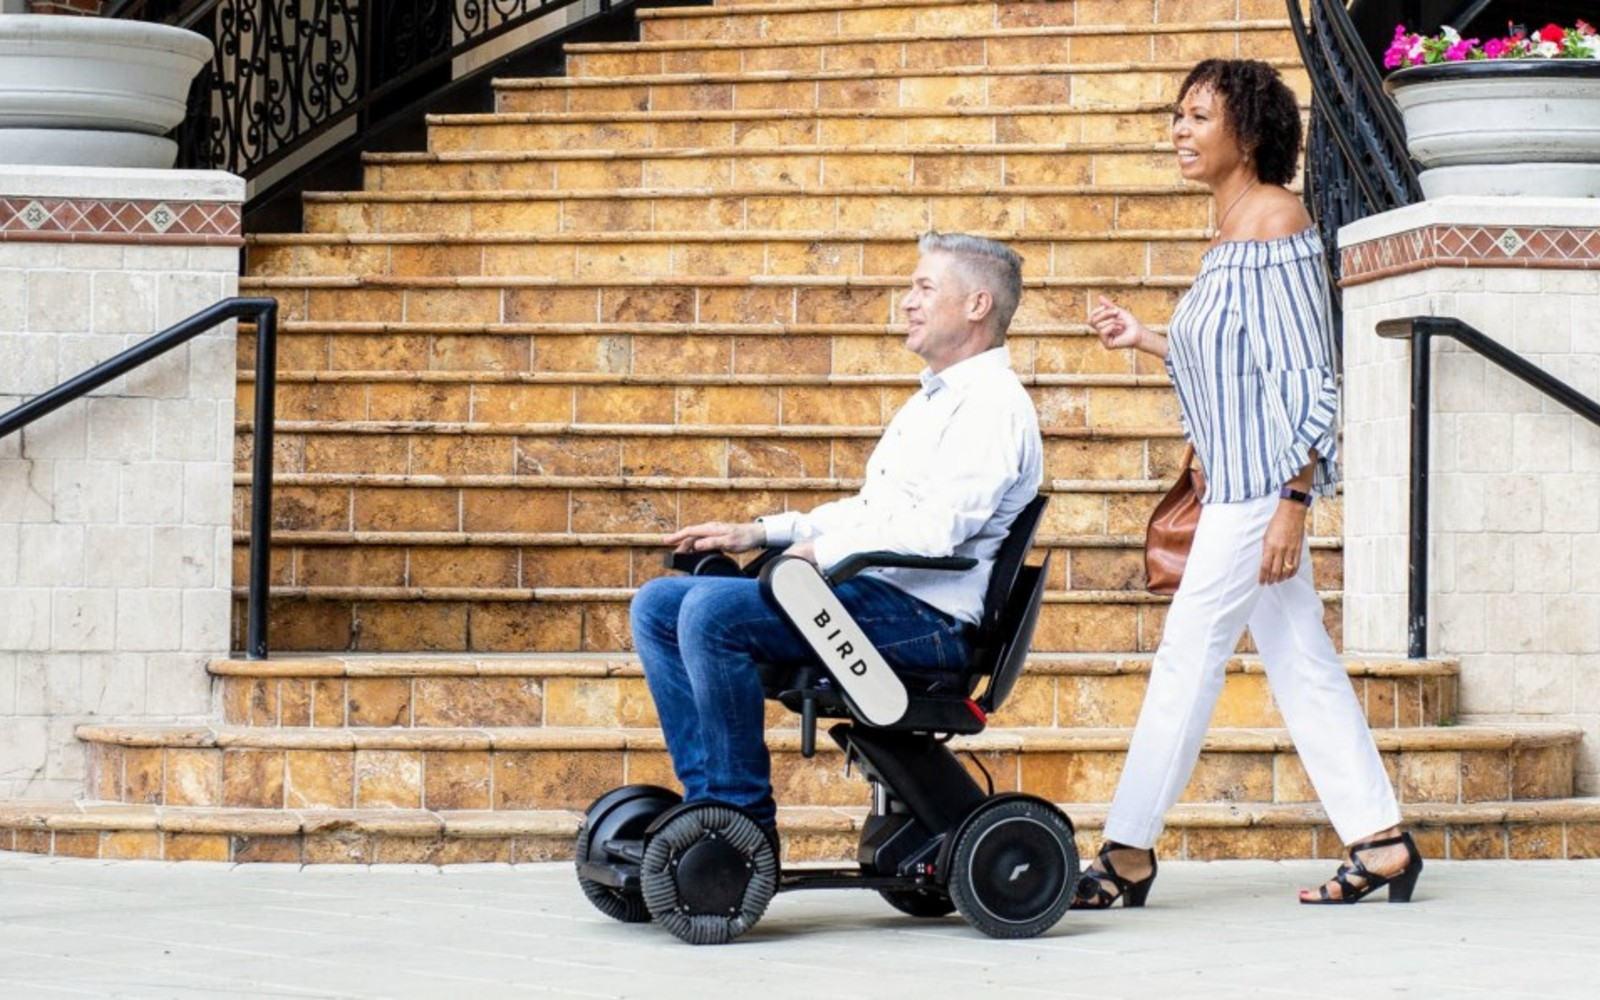 Bird pilots electric wheelchair and mobility scooter rentals in New York City | Engadget